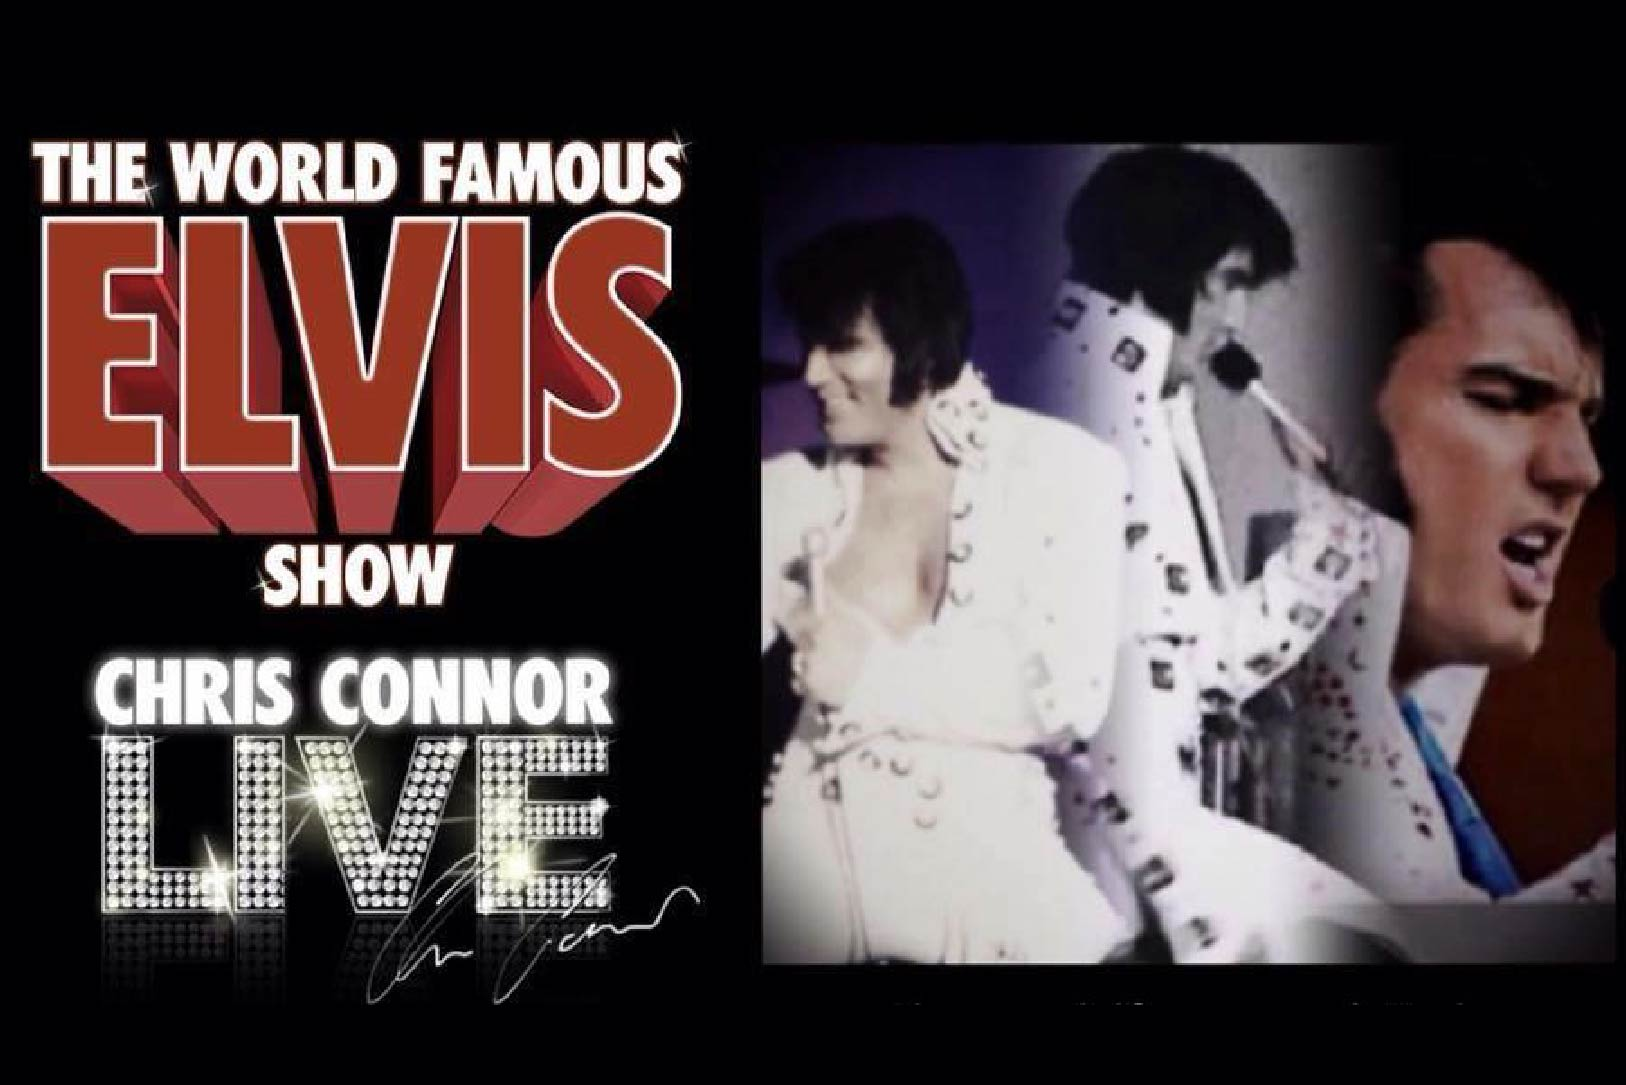 The World Famous Elvis Show